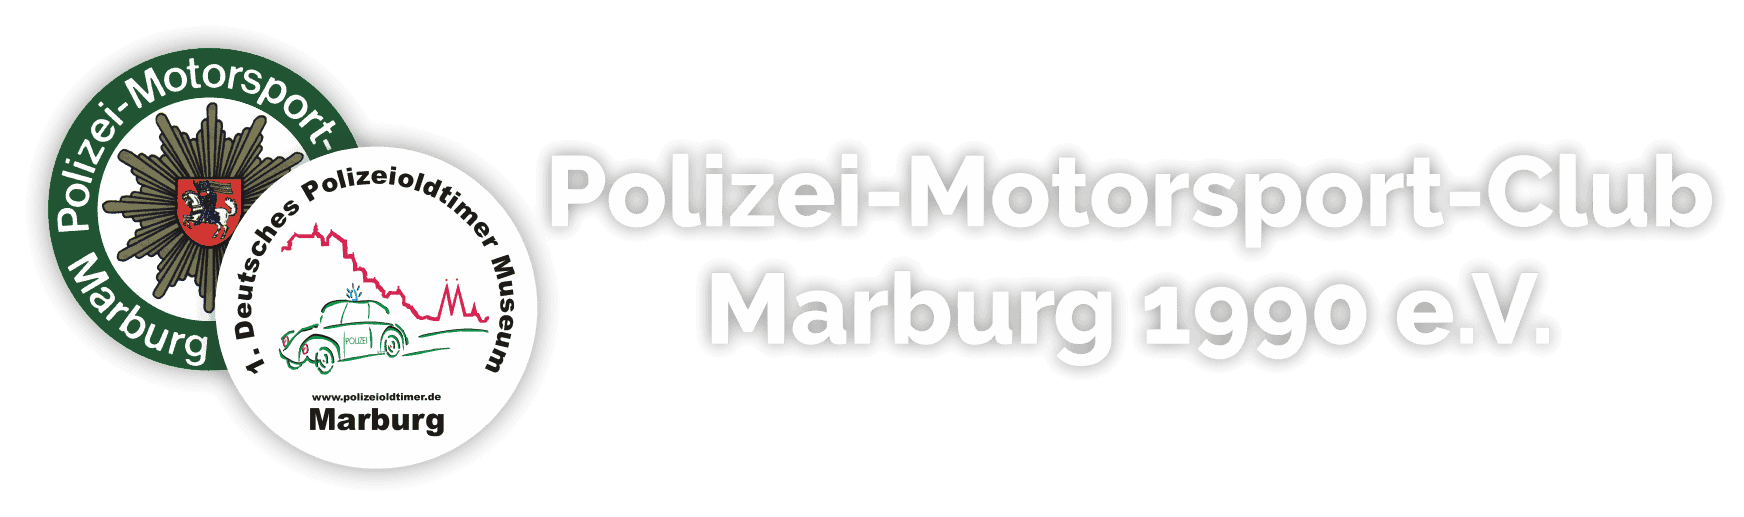 Polizei-Motorsport-Club Marburg 1990 e.V.